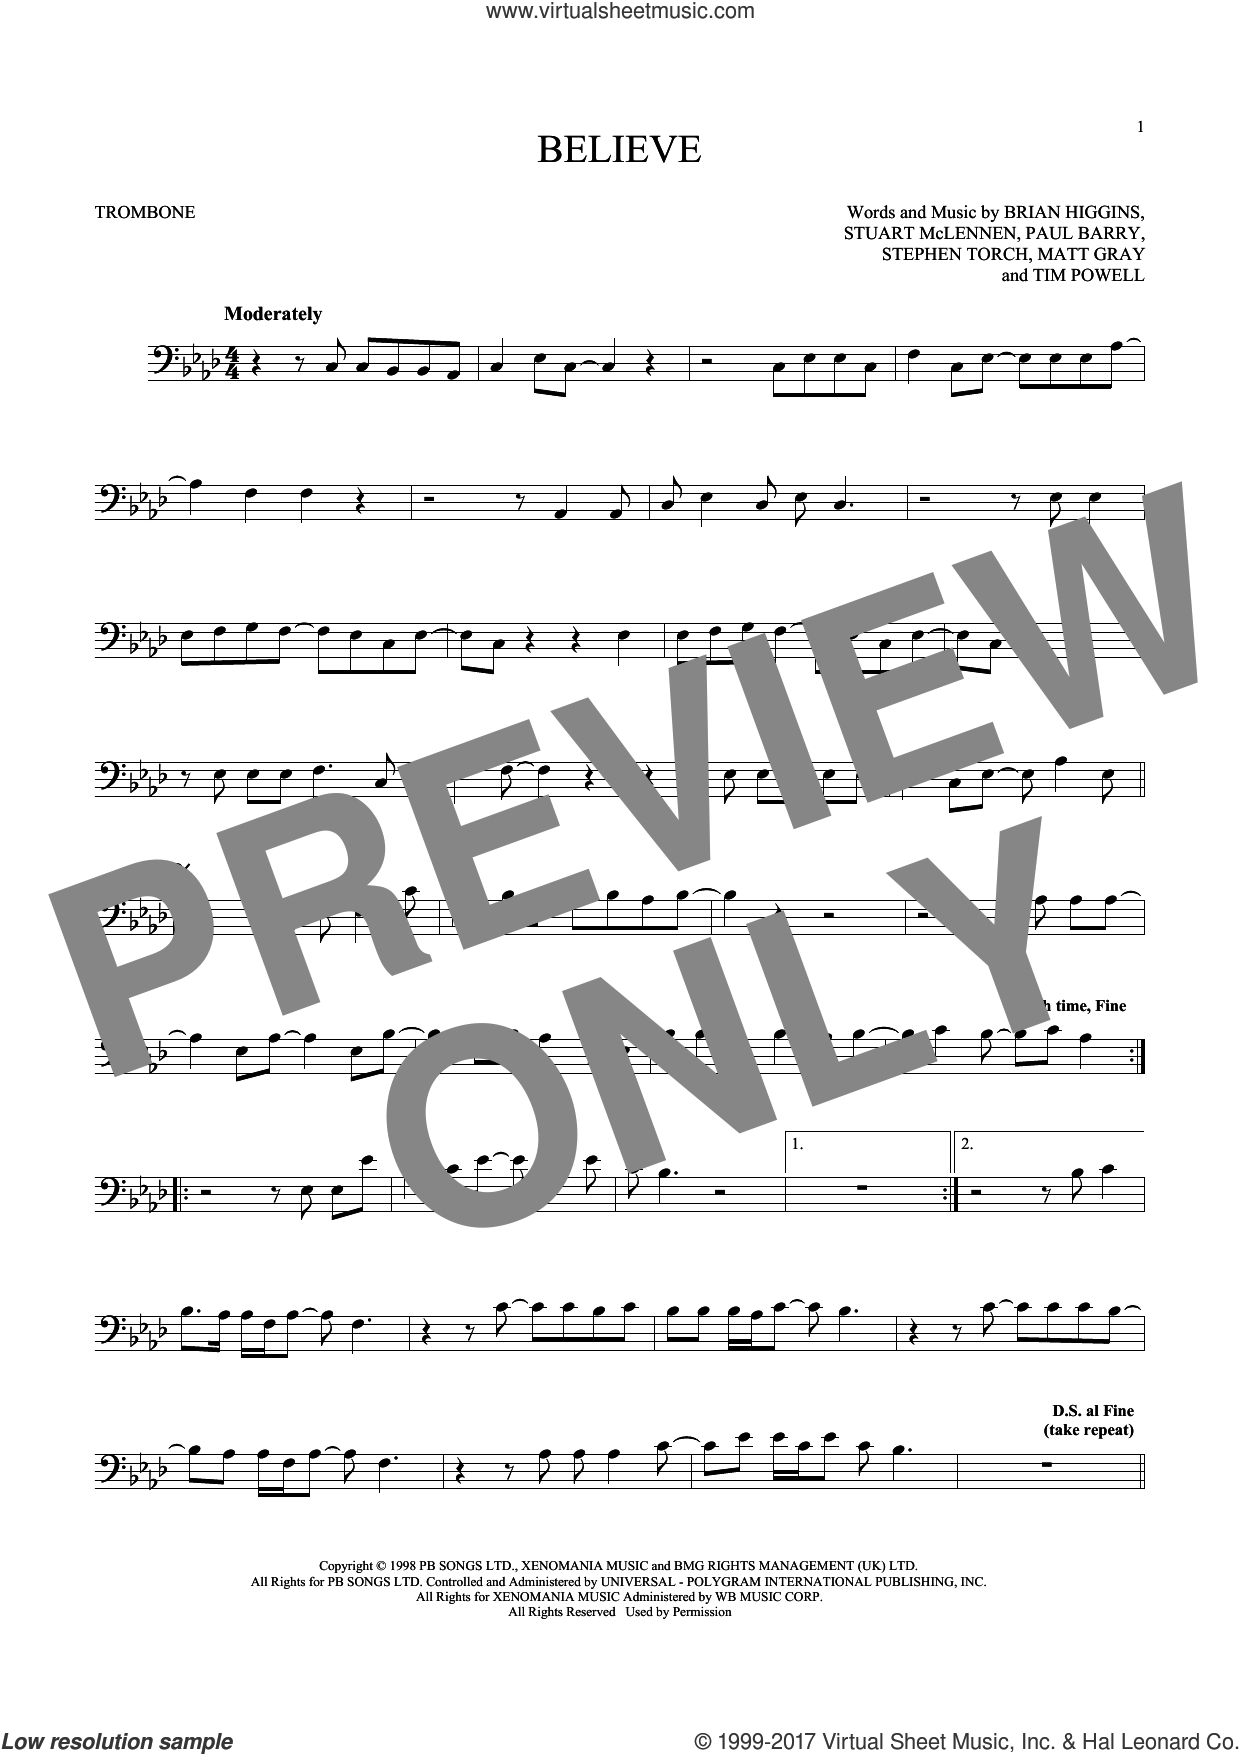 Believe sheet music for trombone solo by Cher, Brian Higgins, Matt Gray, Paul Barry, Stephen Torch, Stuart McLennen and Timothy Powell, intermediate skill level